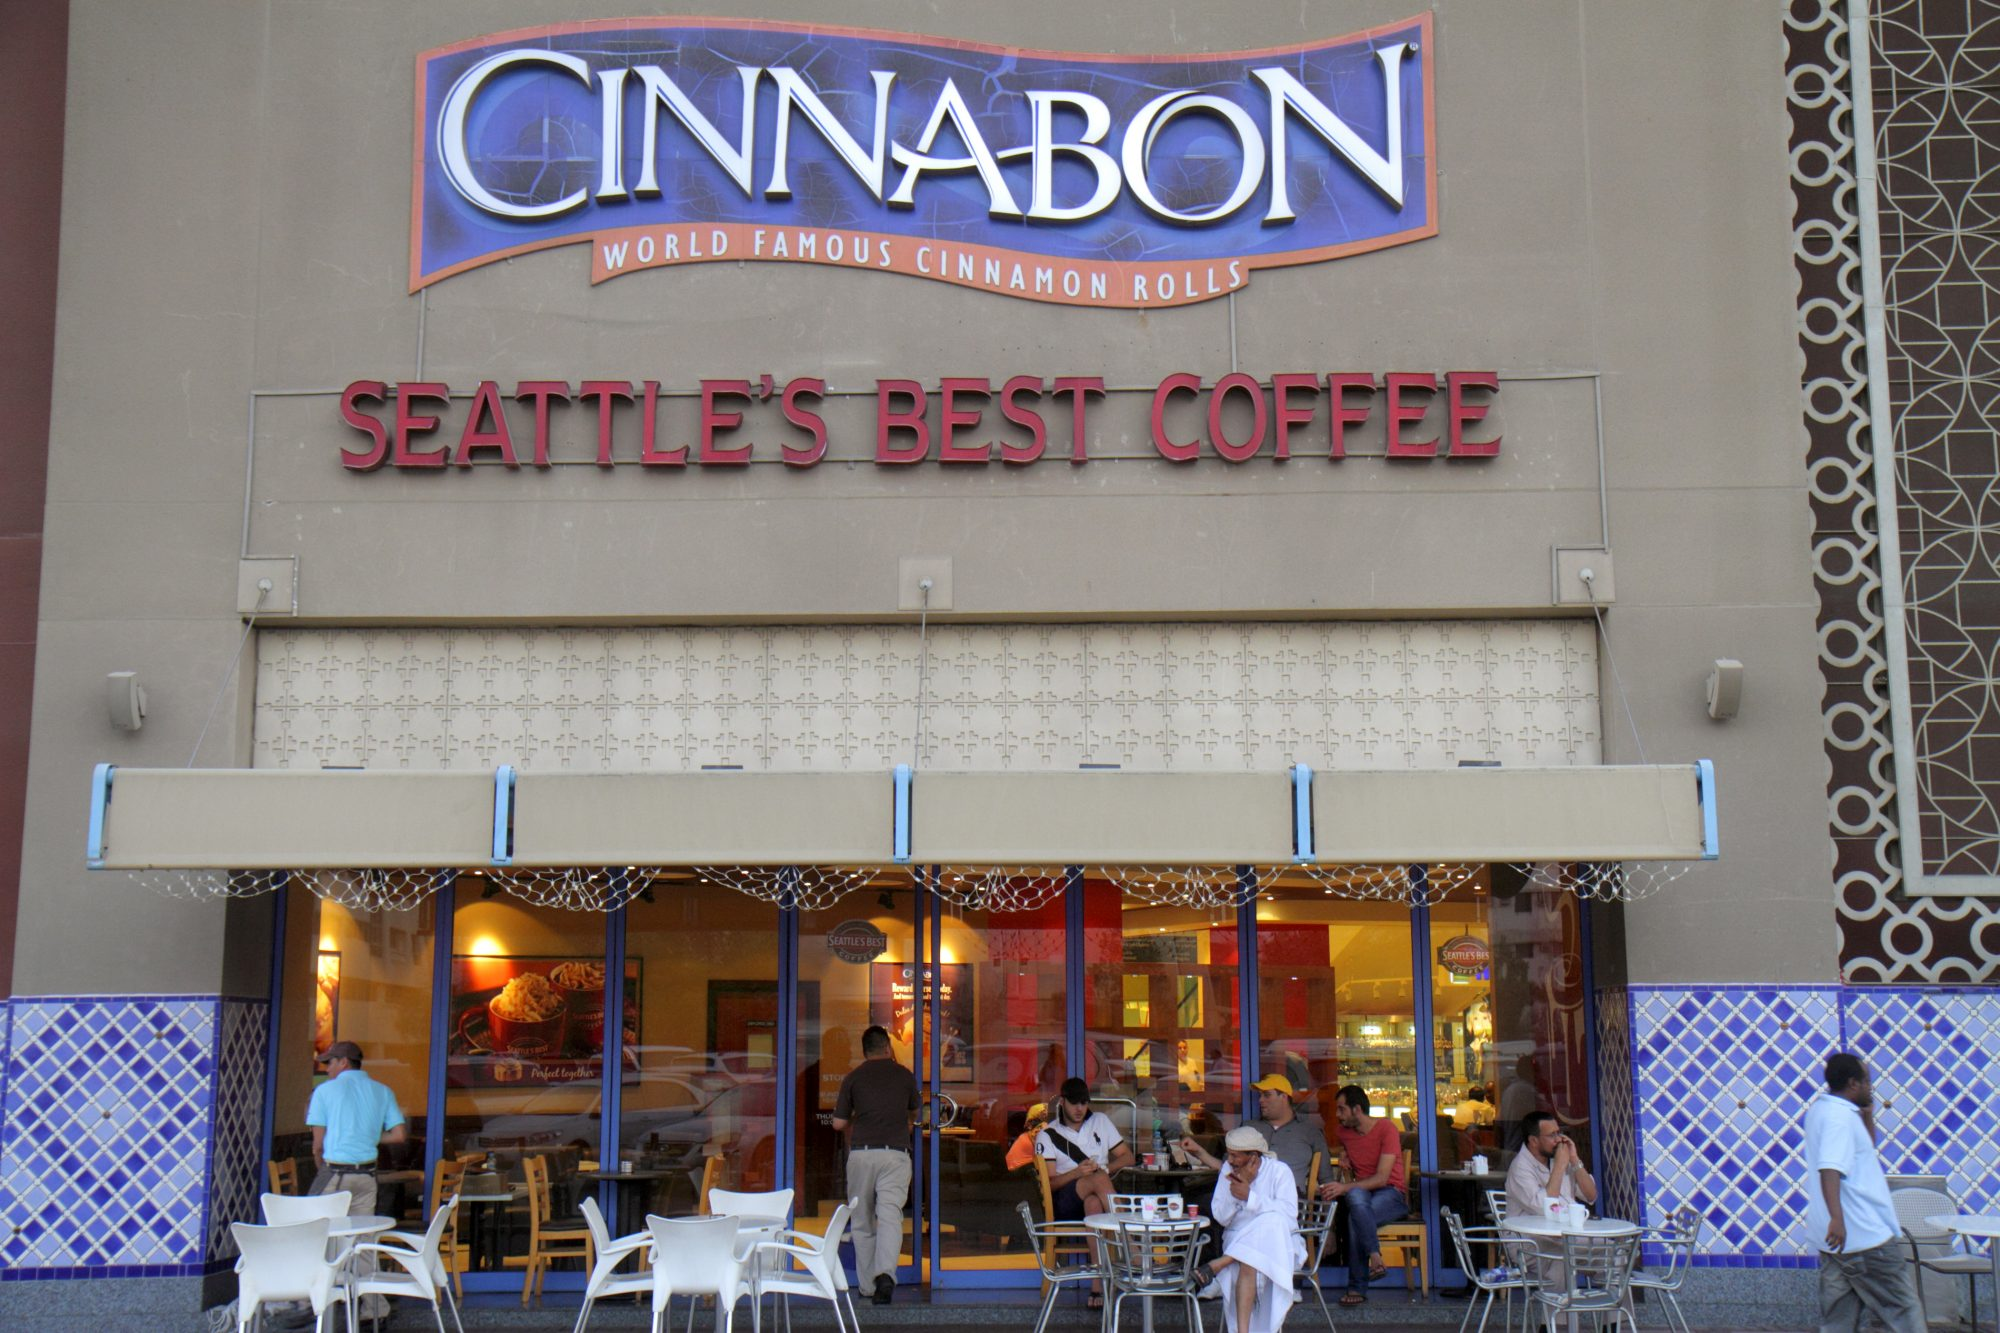 Dubai Deira Al Rigga Al Ghurair Centre shopping mall Bilingual Signs Cinnabon, Seattle's Best Coffee